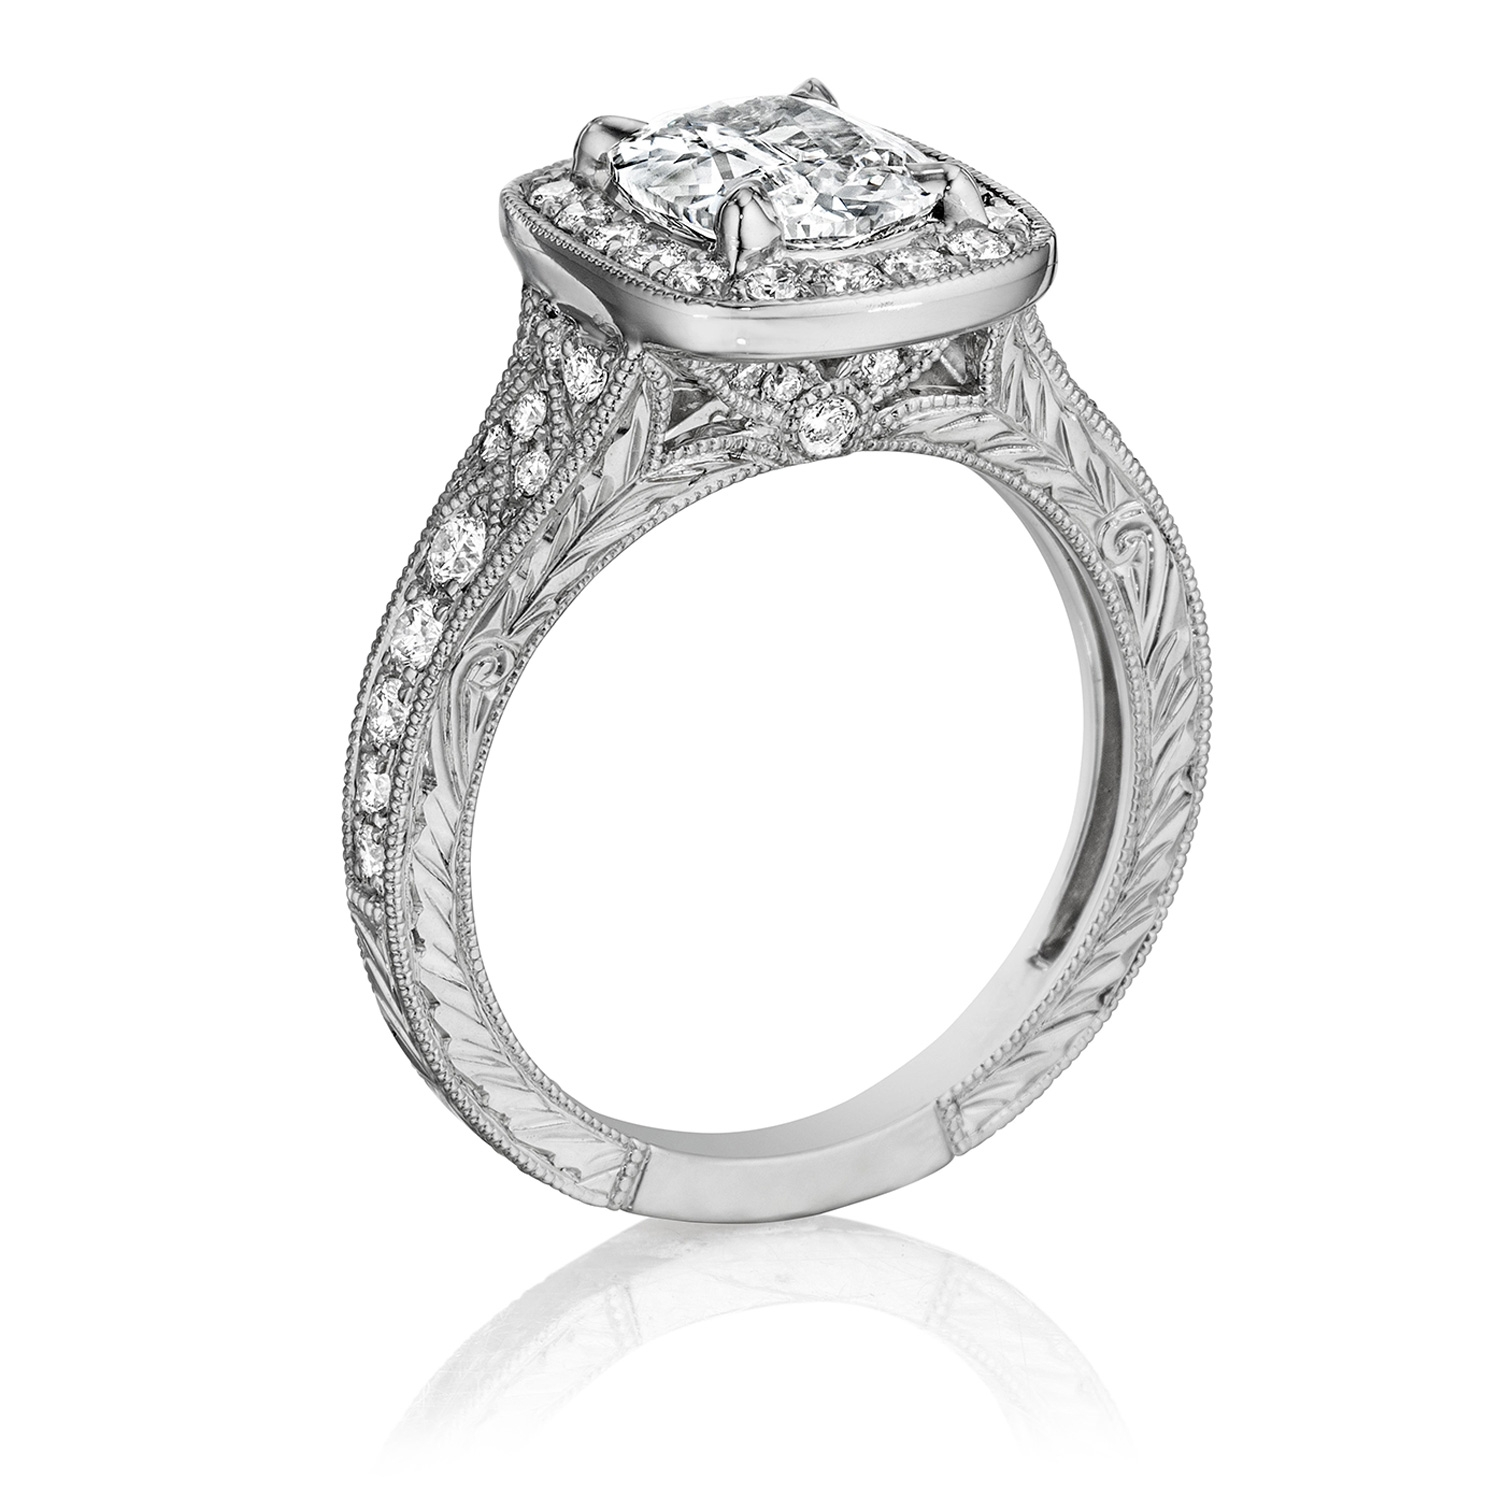 Henri Daussi AZP Cushion Halo Graduated Accent Diamonds Engagement Ring Alternative View 1